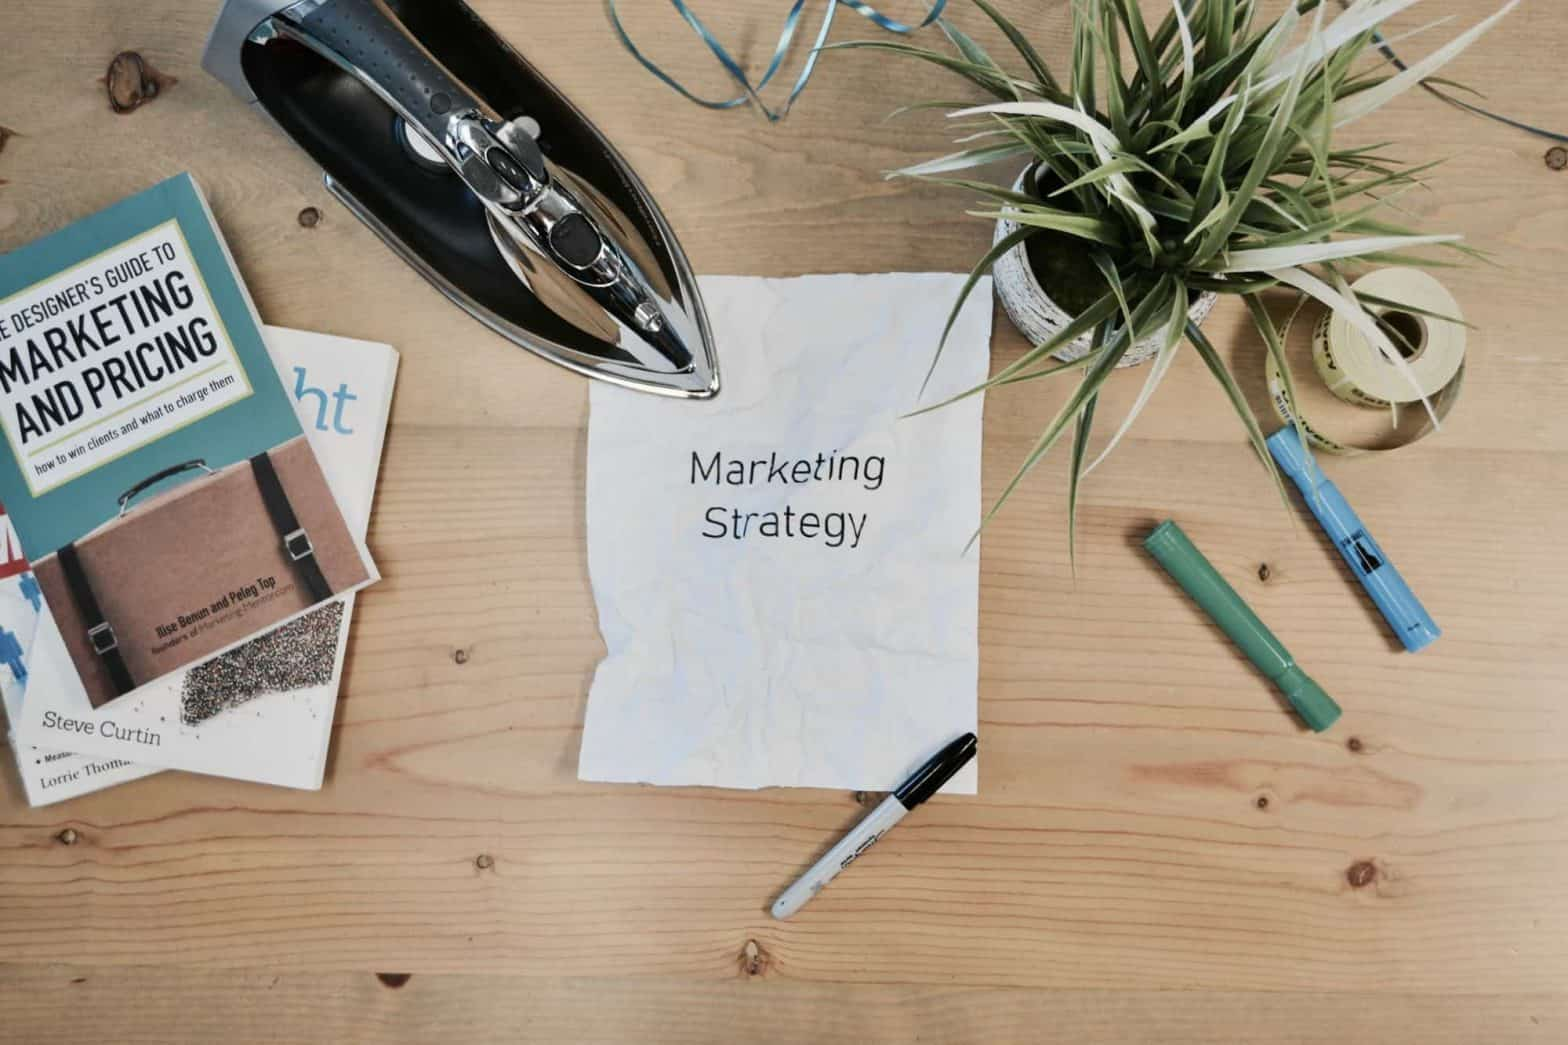 How To Write A Marketing Strategy In 8 Simple Steps